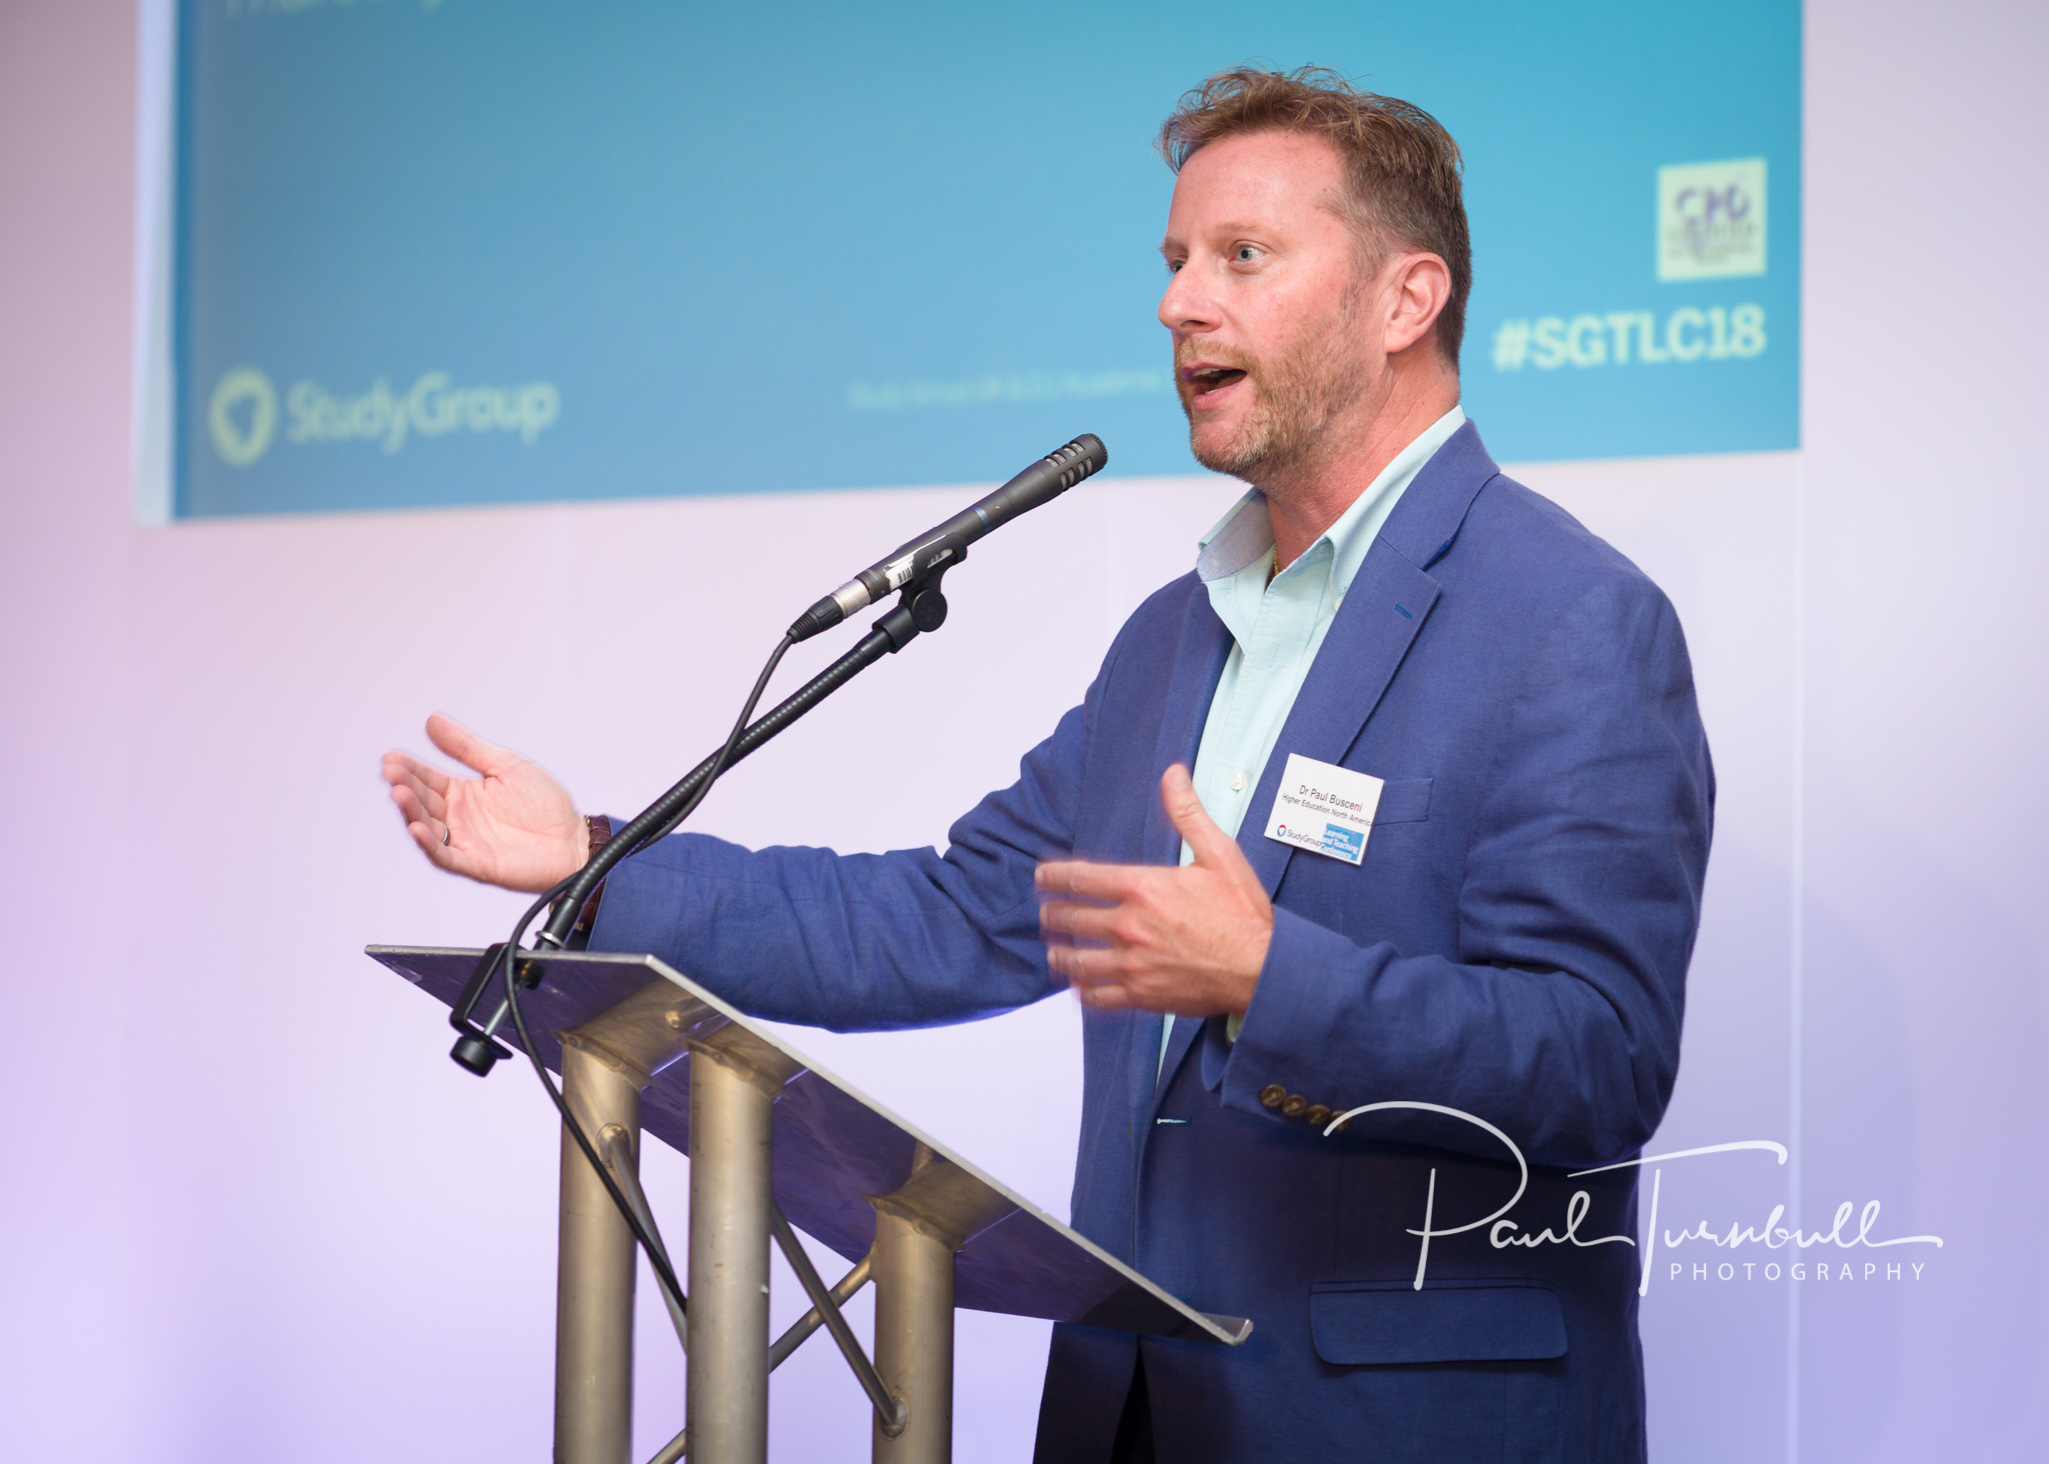 conference-event-photographer-queens-hotel-leeds-yorkshire-012.jpg